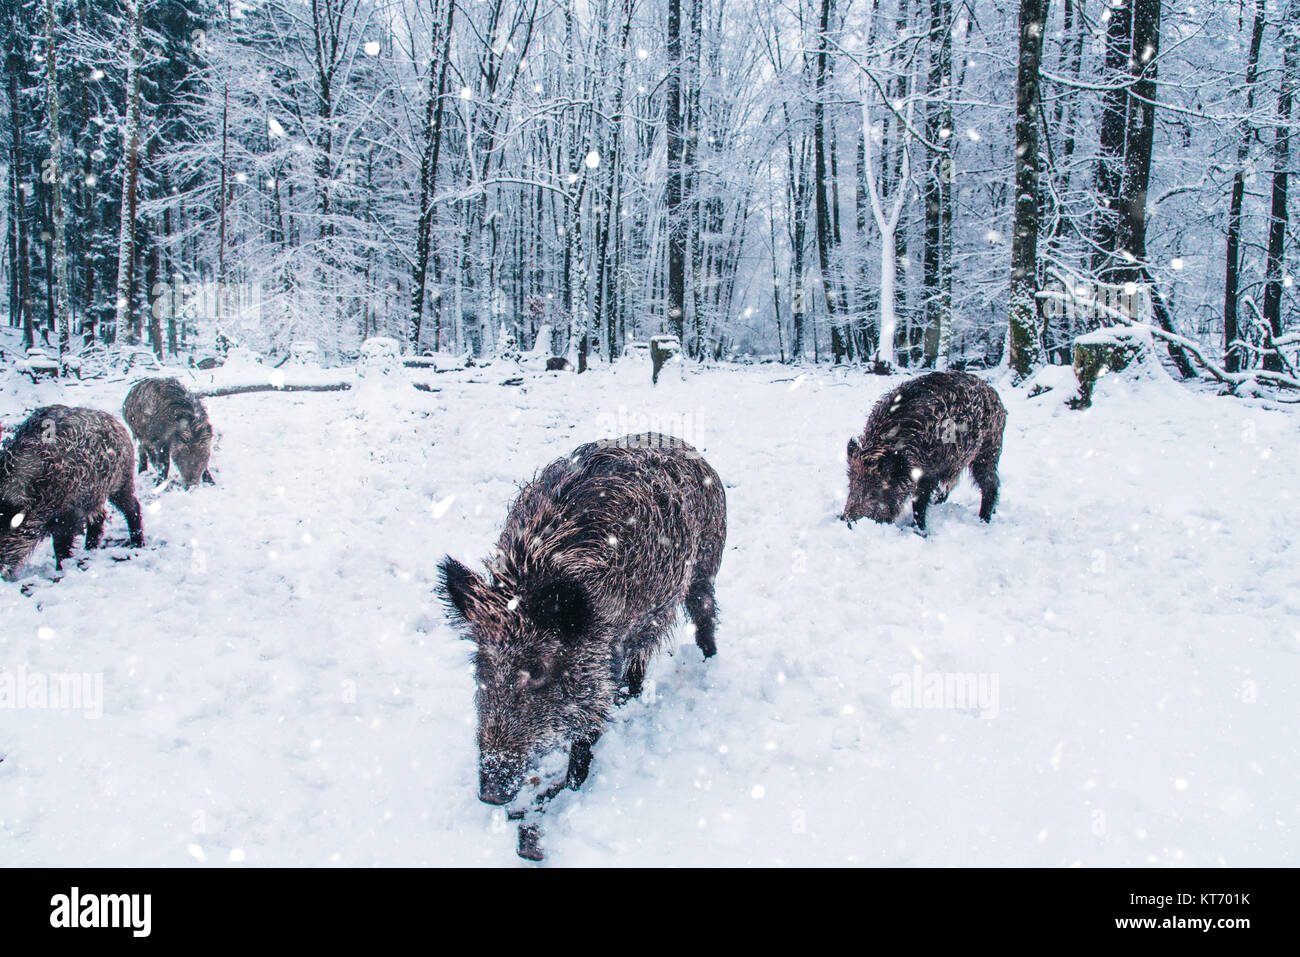 Wild boars in the winter Black Forest, Germany. - Stock Image